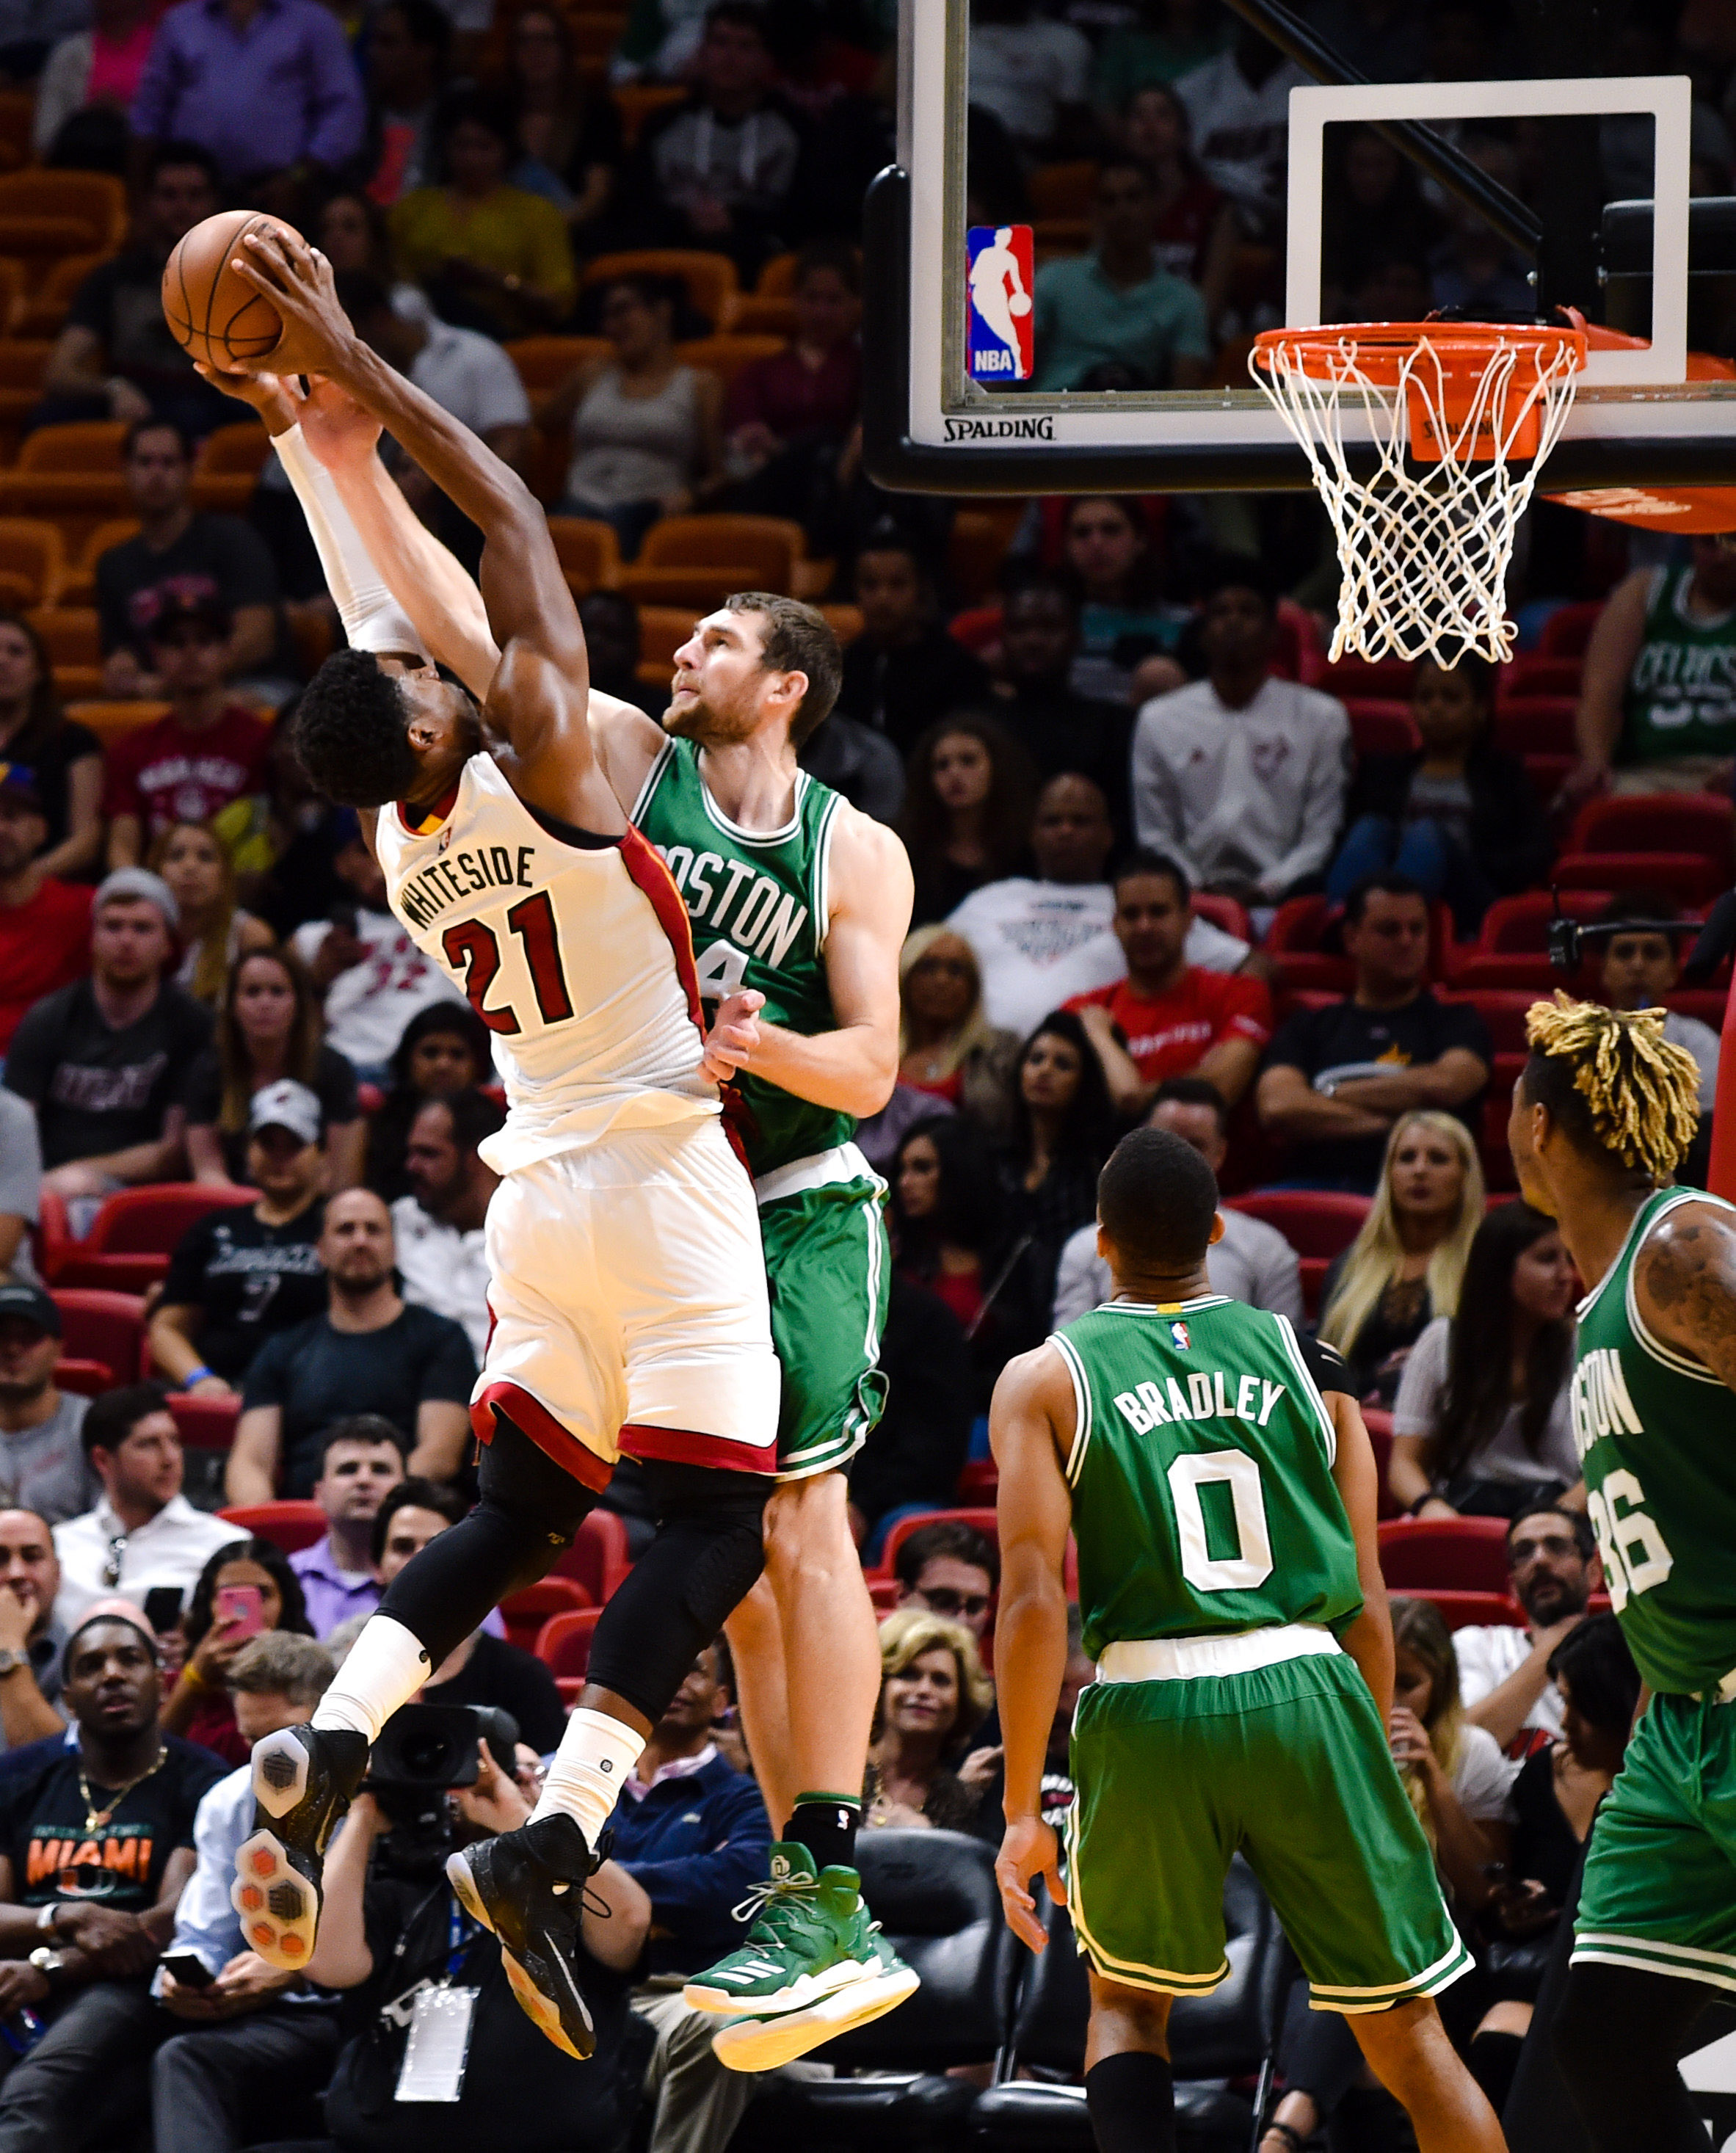 Isaiah Thomas scores 25, Celtics sneak past Heat 112-104